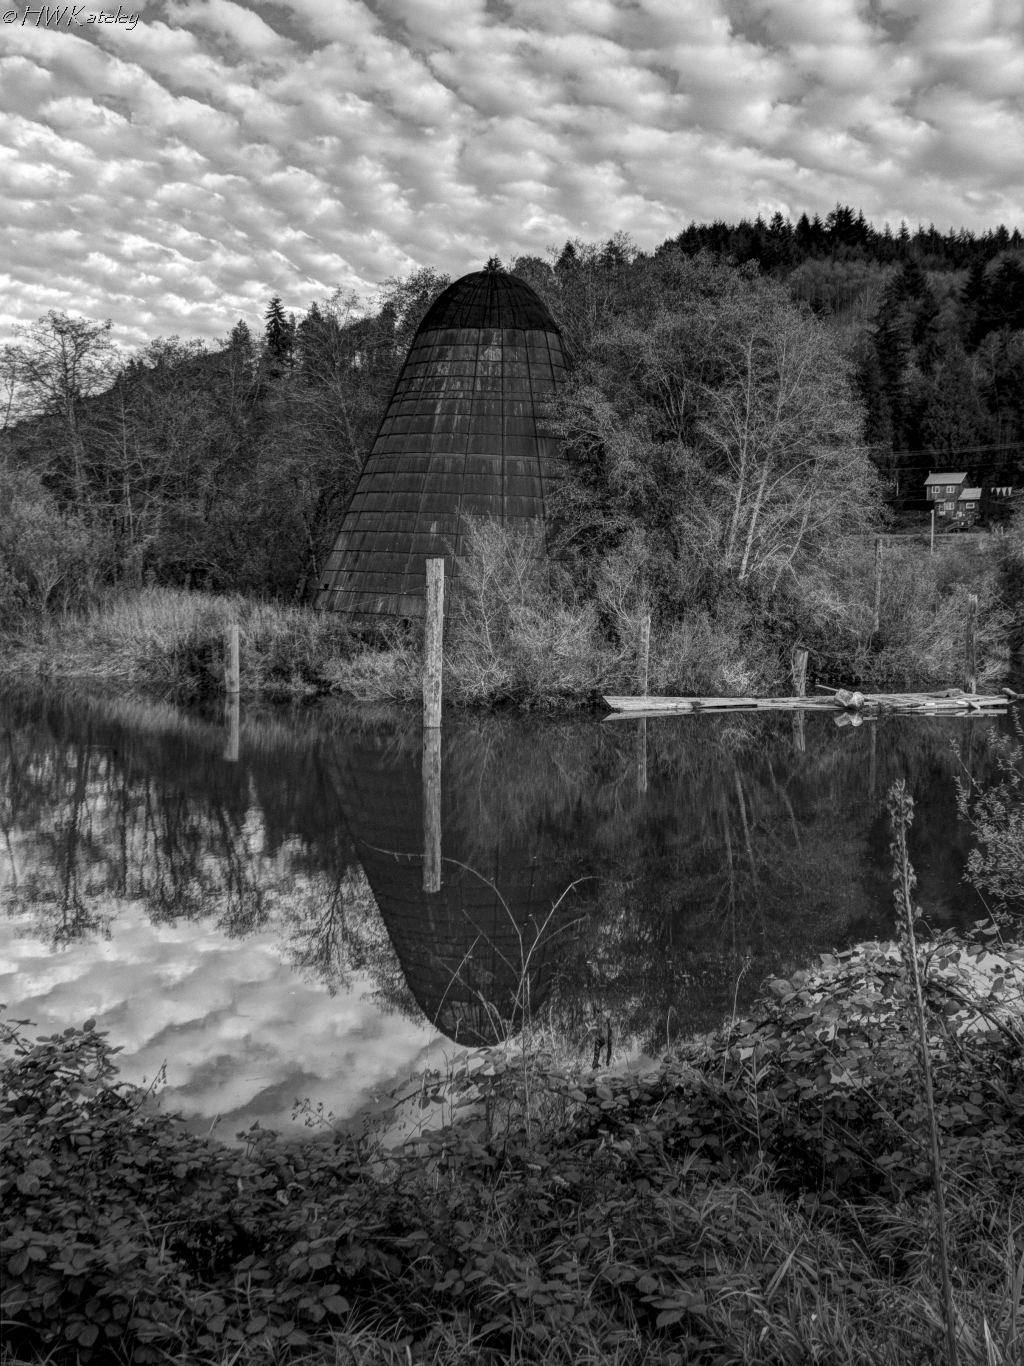 1_LR_MillBurnerBW-P1070074_5_6_fused1-1024WM